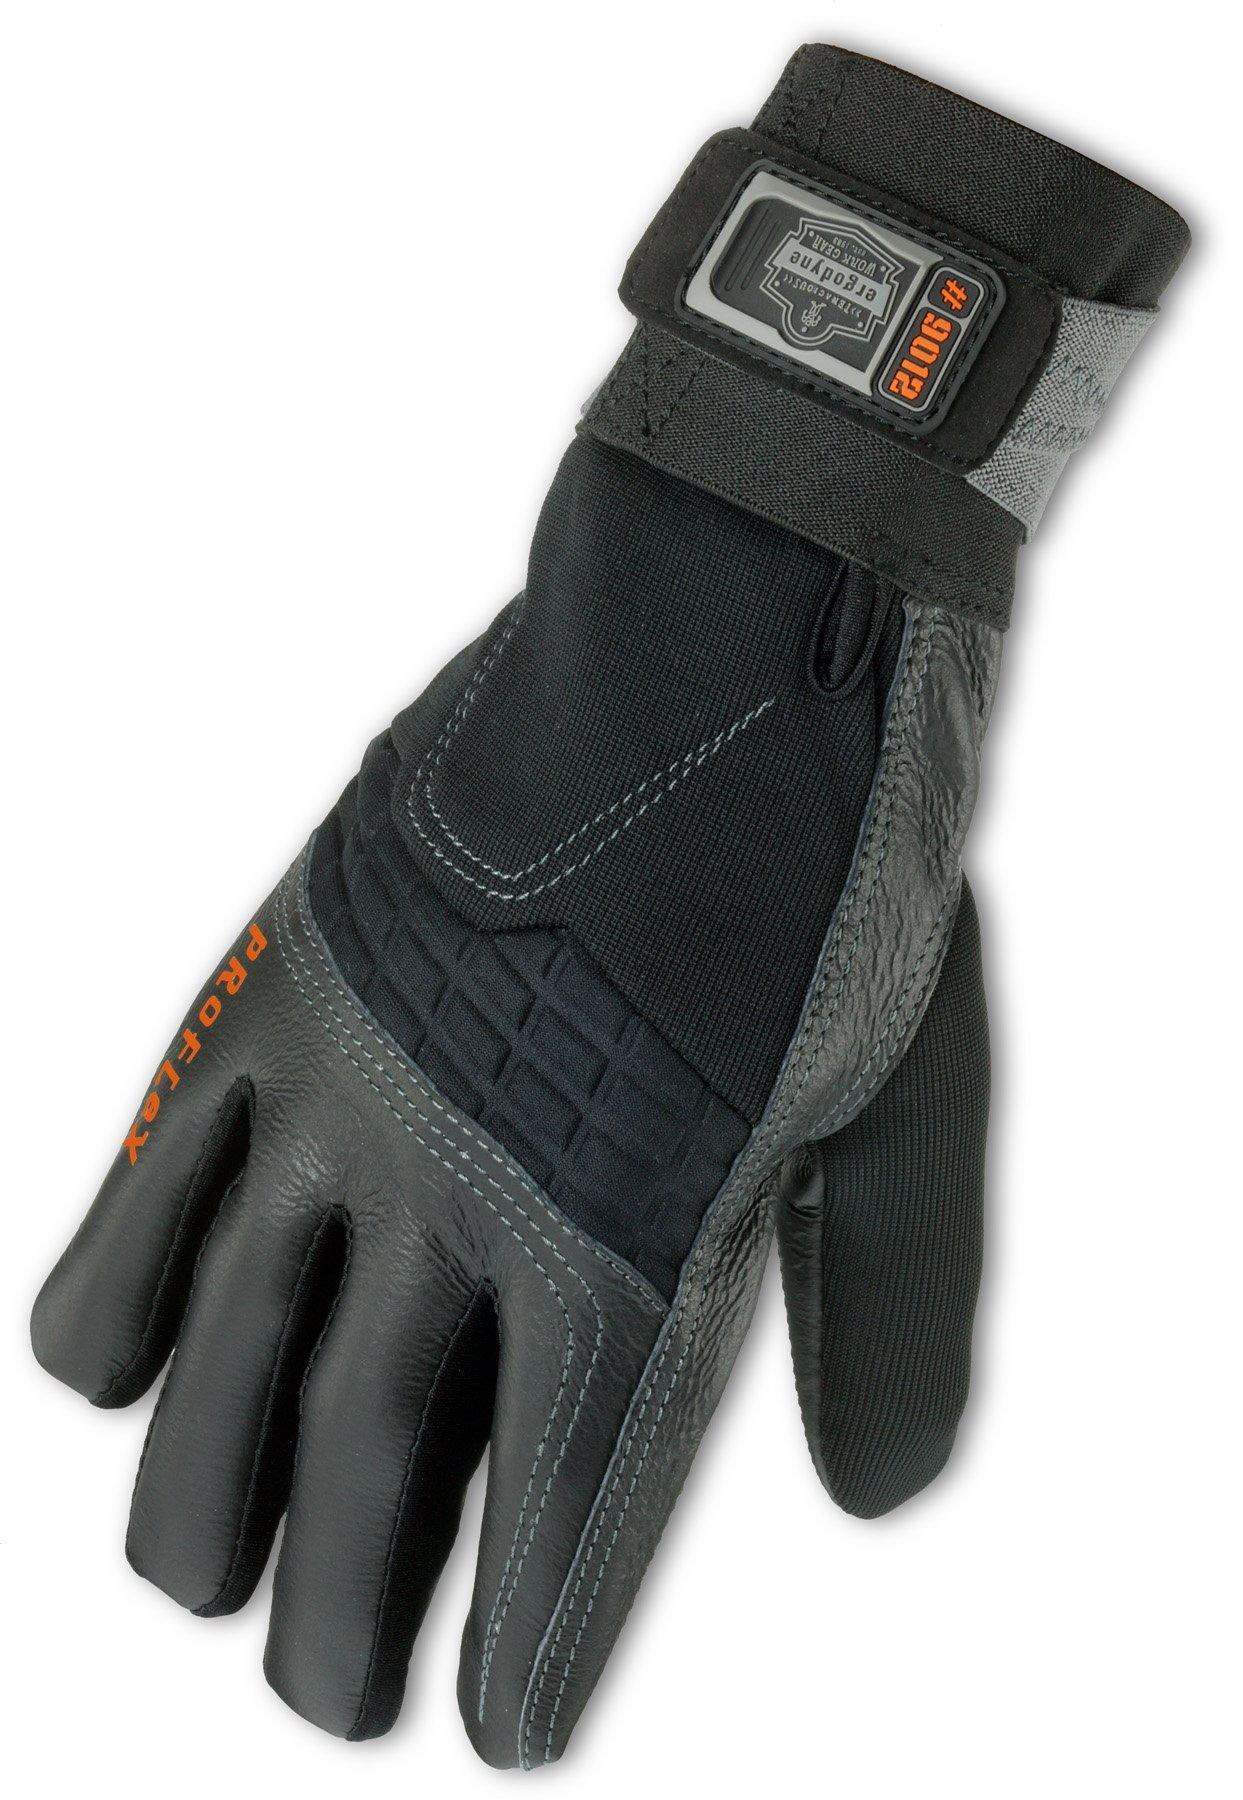 Ergodyne ProFlex 9012 Certified Anti-Vibration Work Glove with Wrist Support, Medium, Black